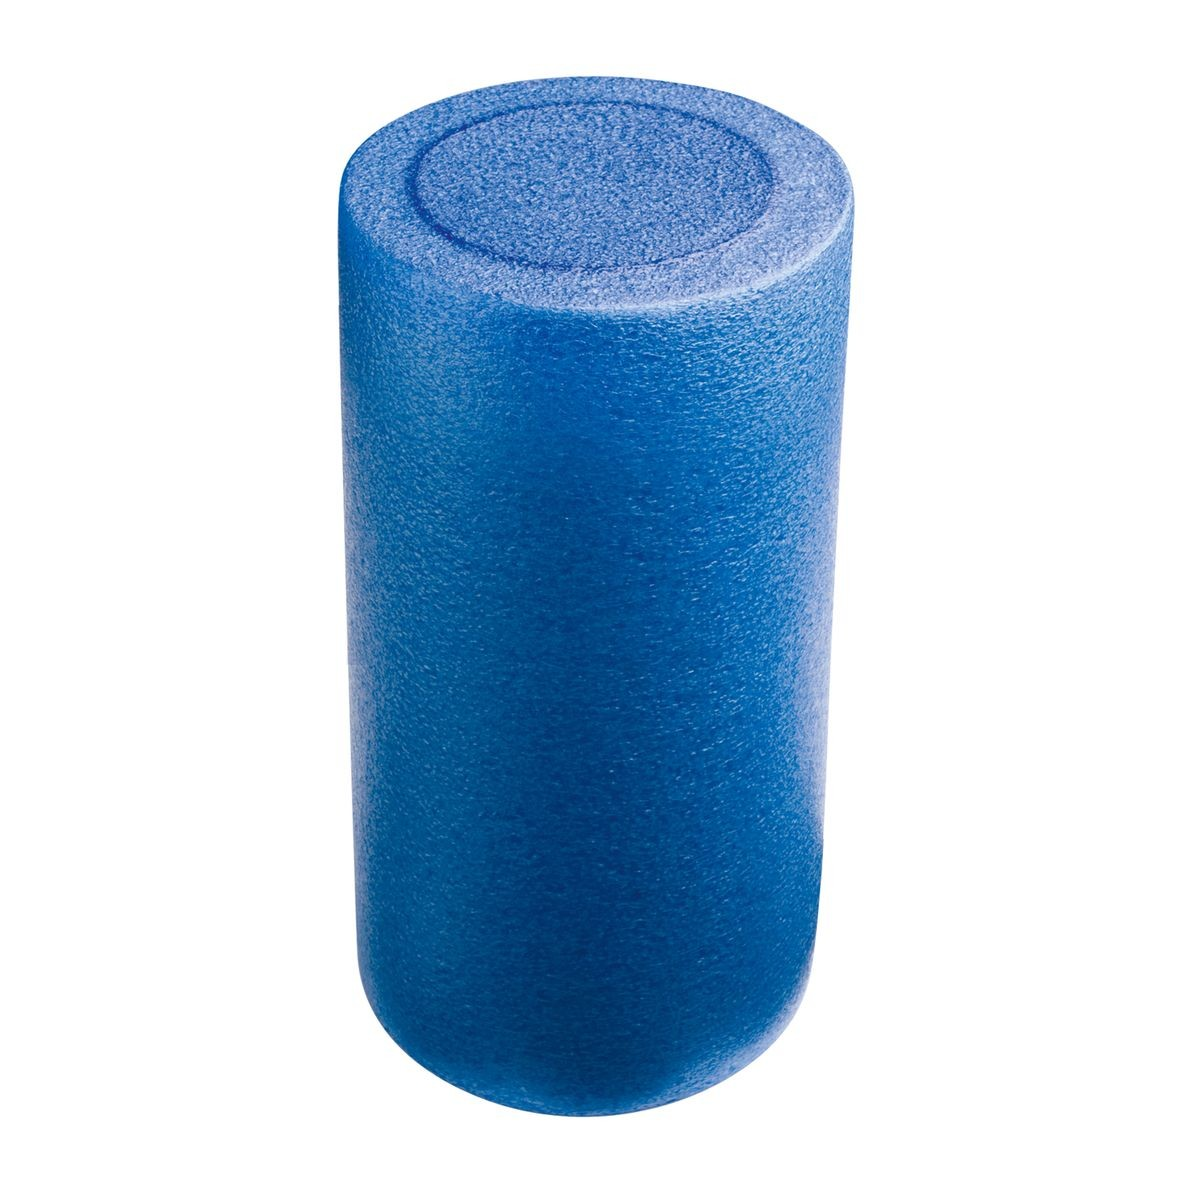 Yoga & Pilates Rolle REFLECTS-LOMINT BLUE, Ansicht 2